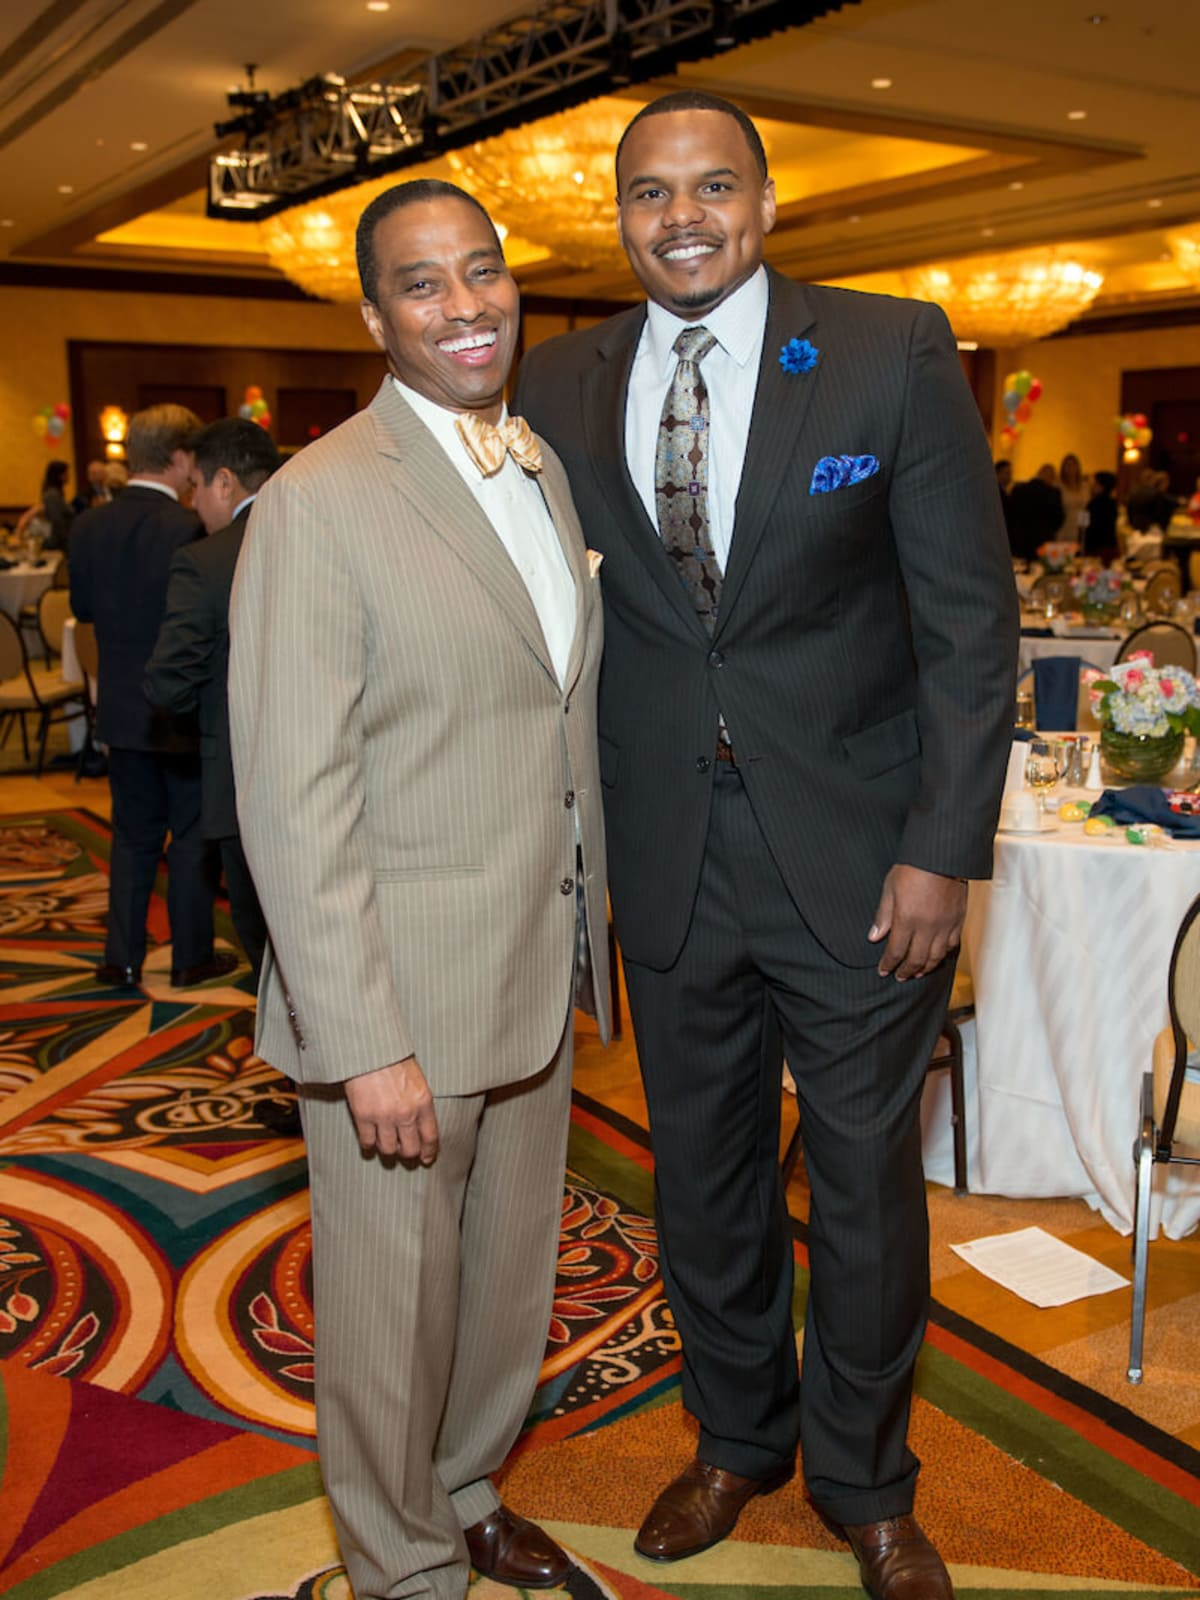 Boys & Girls Club dinner, 9/16 : Khambrel Marshall, Chester Pitts